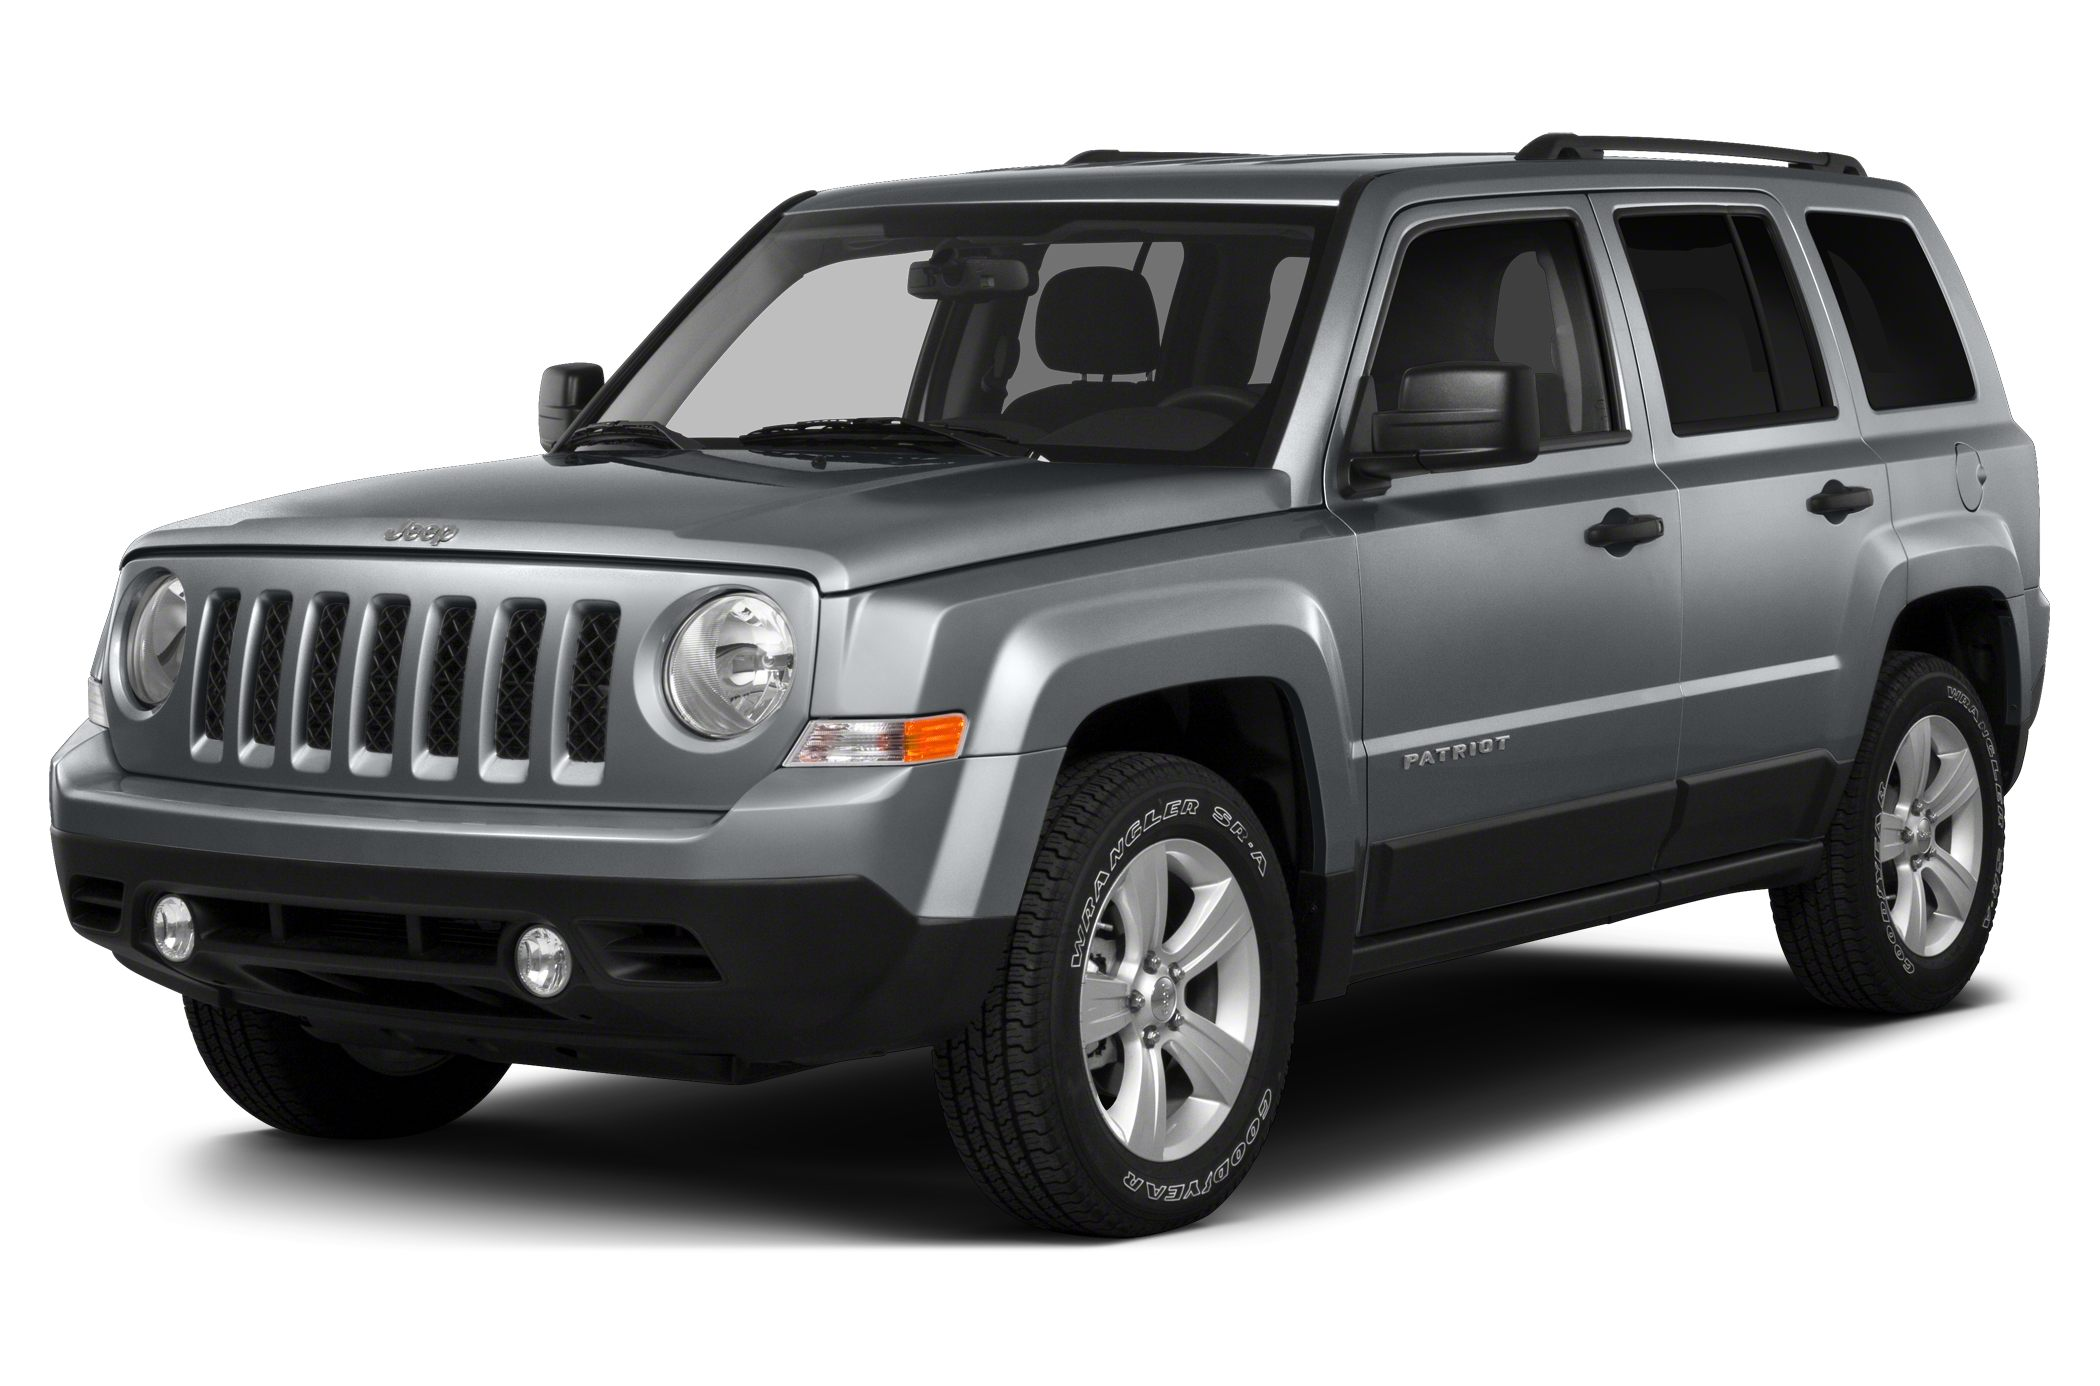 2015 Jeep Patriot #1